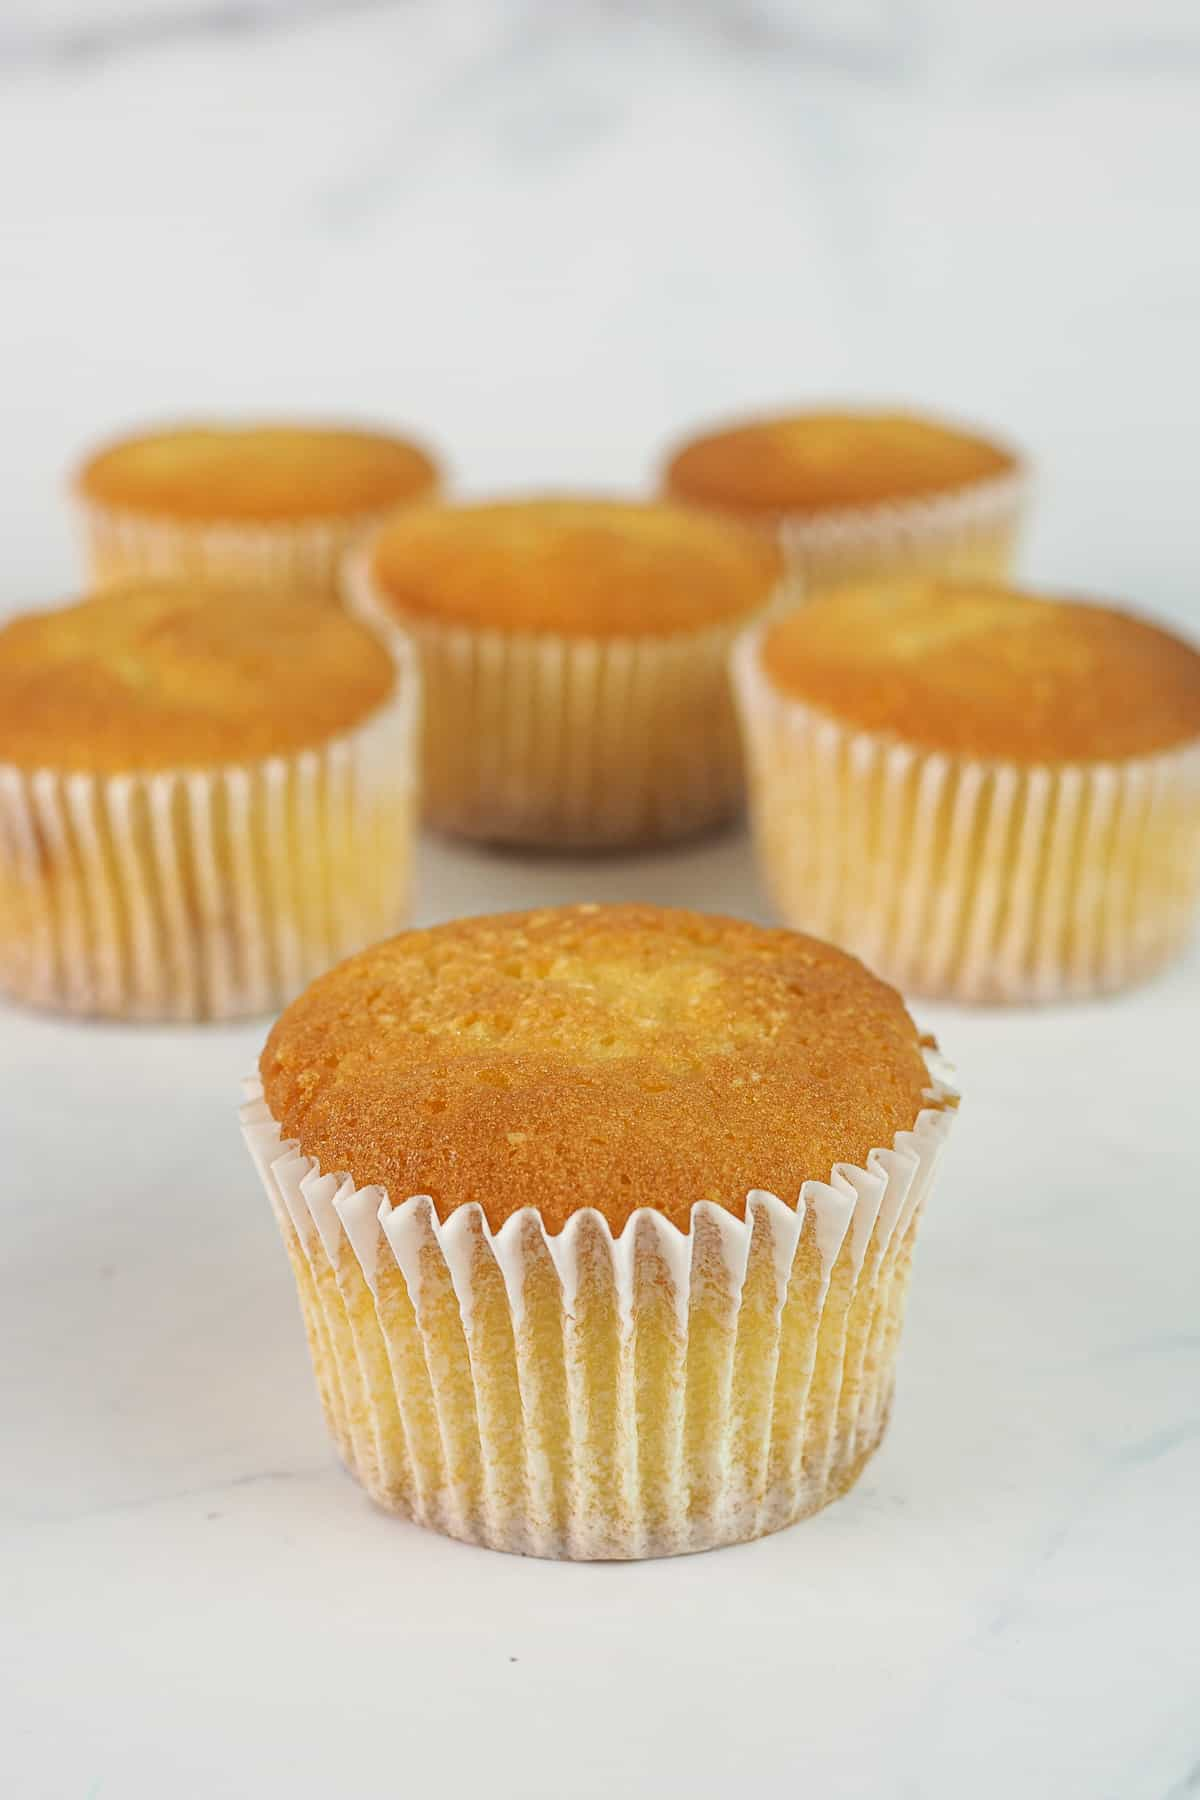 Plain vanilla cupcakes baked from scratch